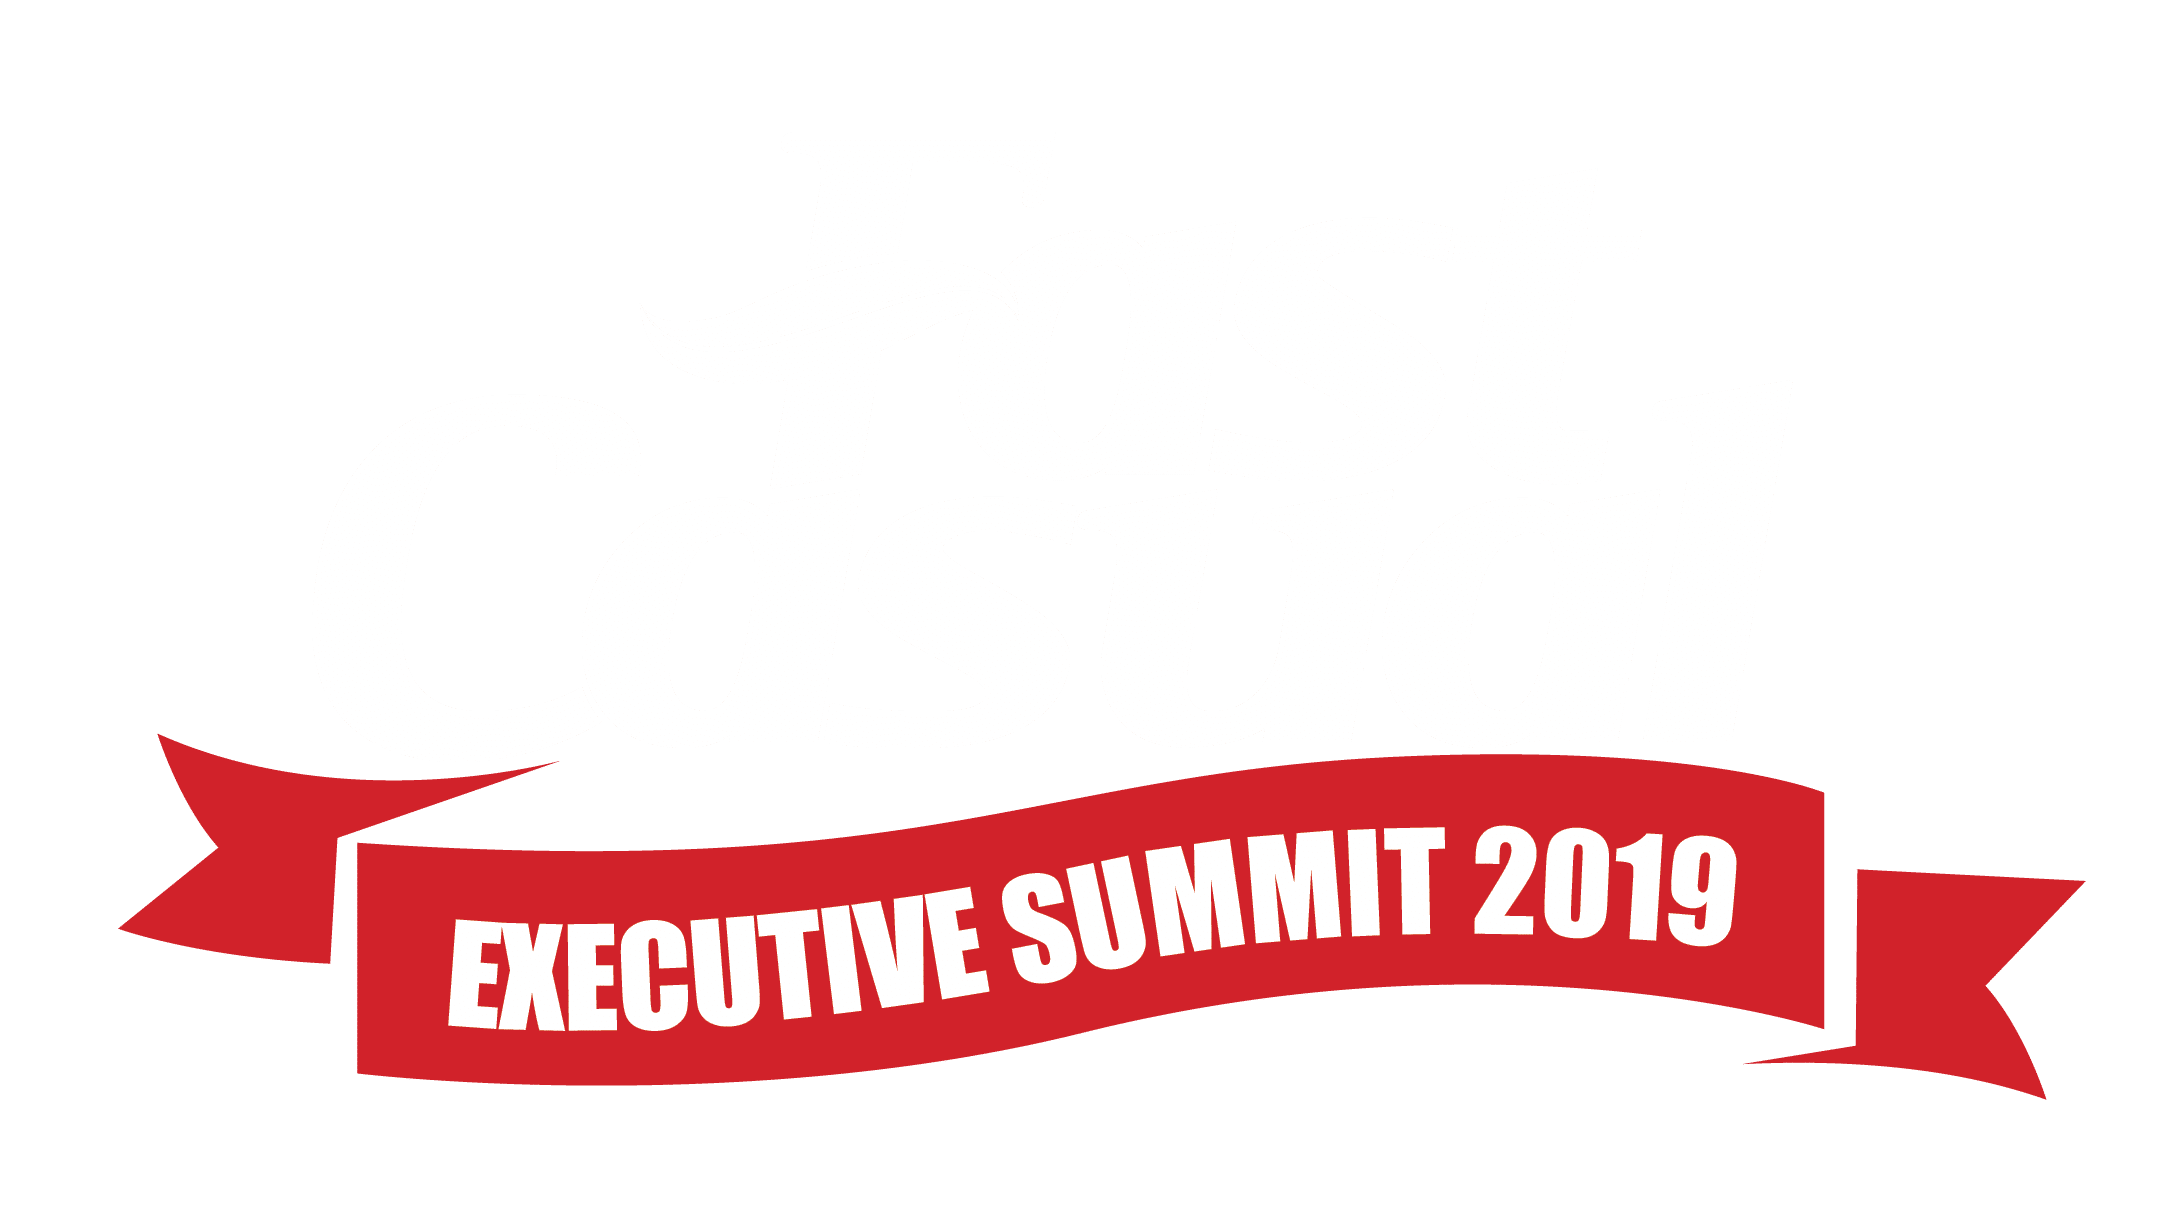 Fast Casual Executive Summit